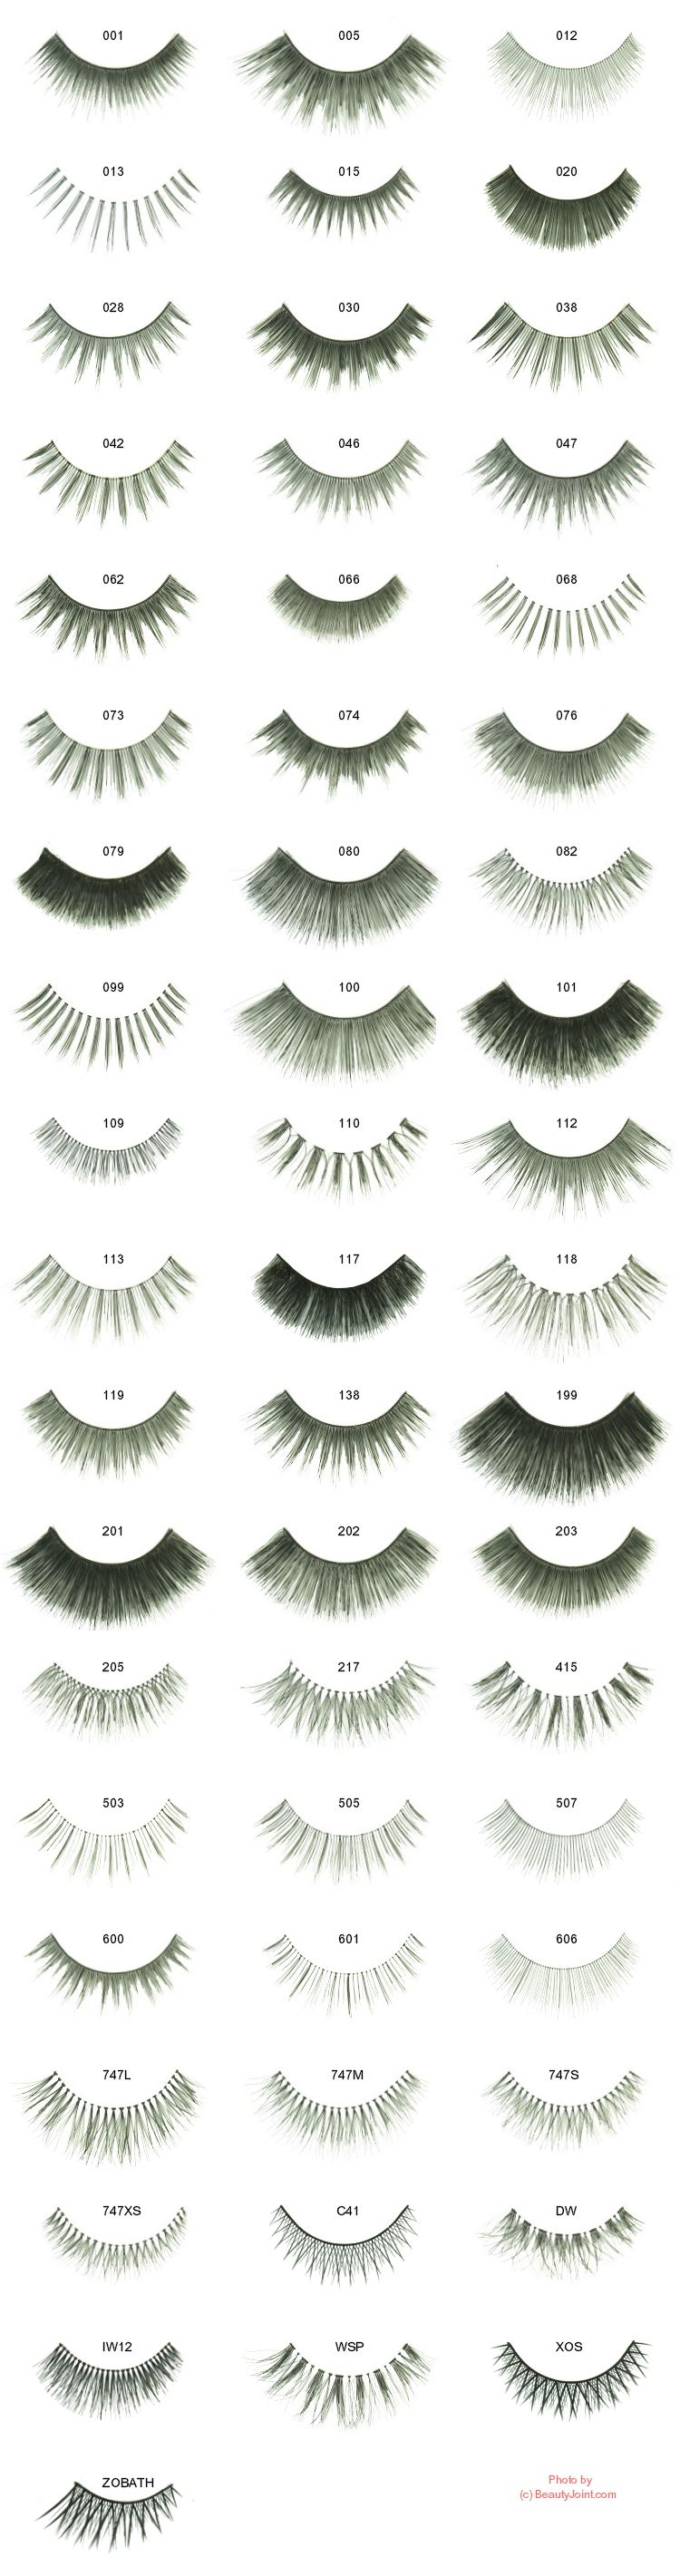 423e7b7794e CHERRY BLOSSOM False Eyelashes. These are so much fun for a special night  out!